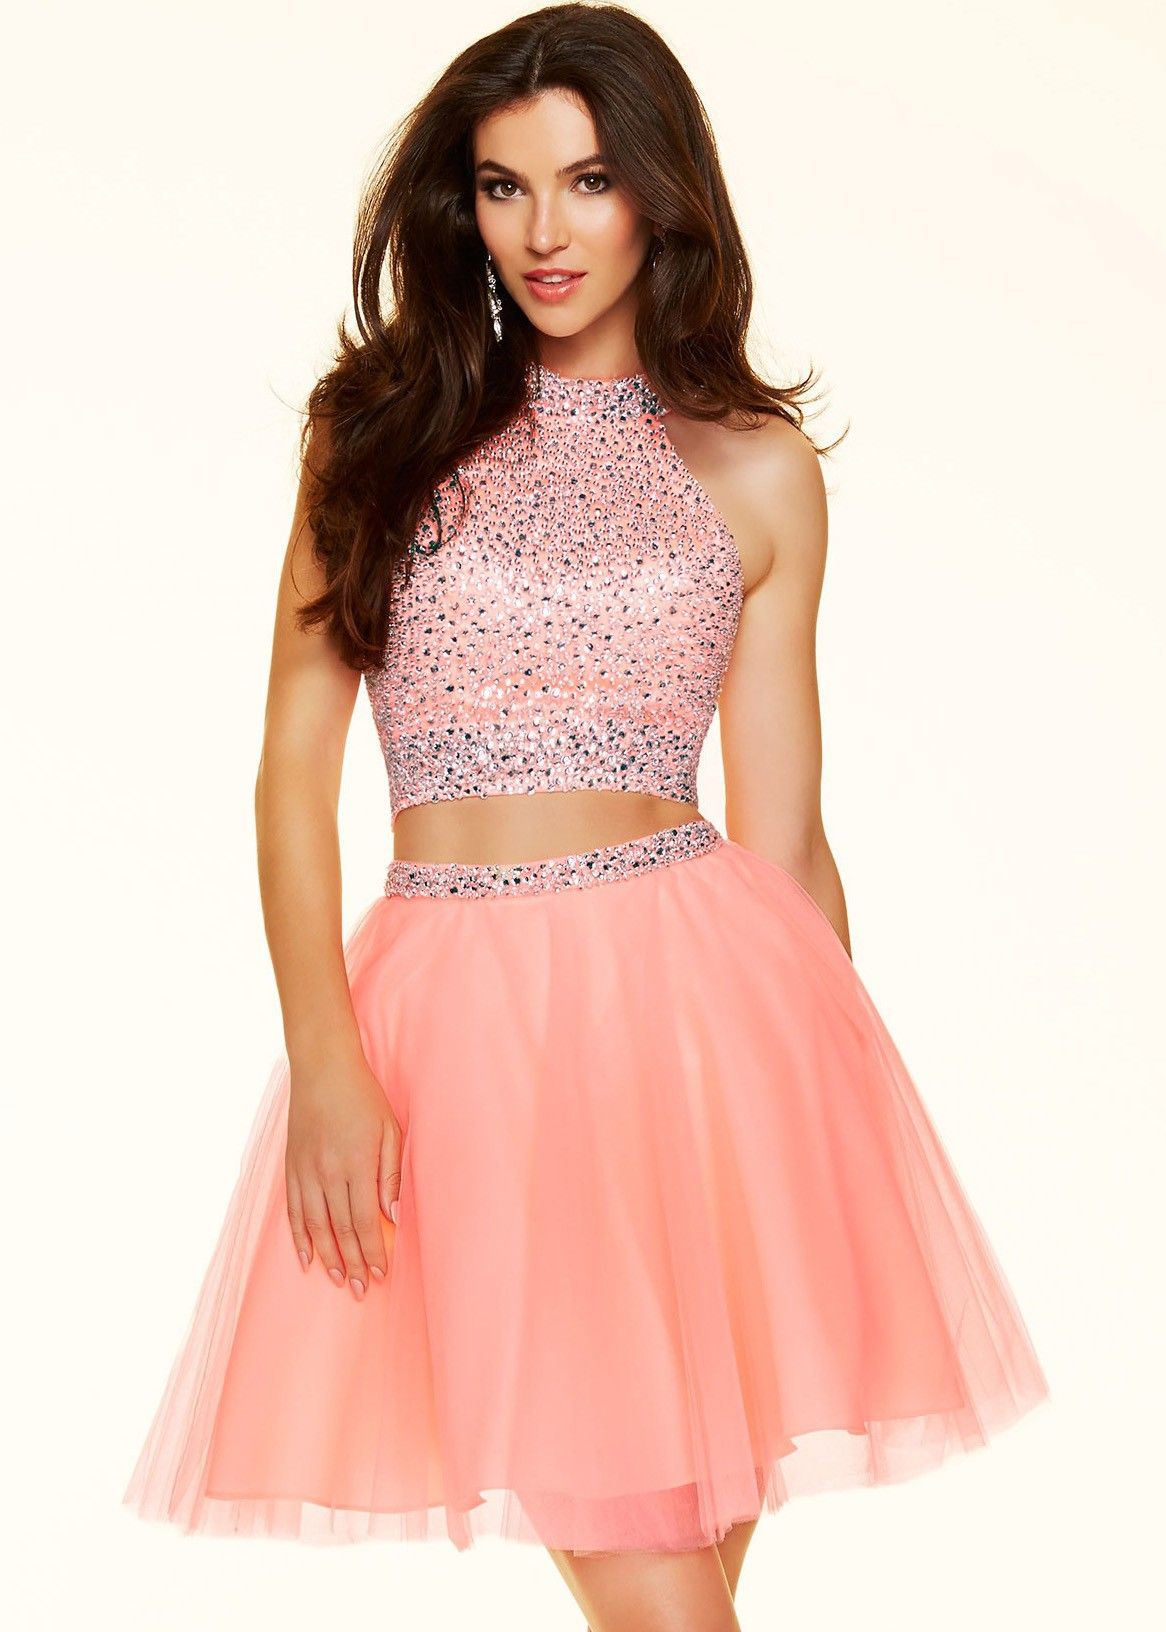 Sticks u stones by mori lee sequin pc party dress mori lee